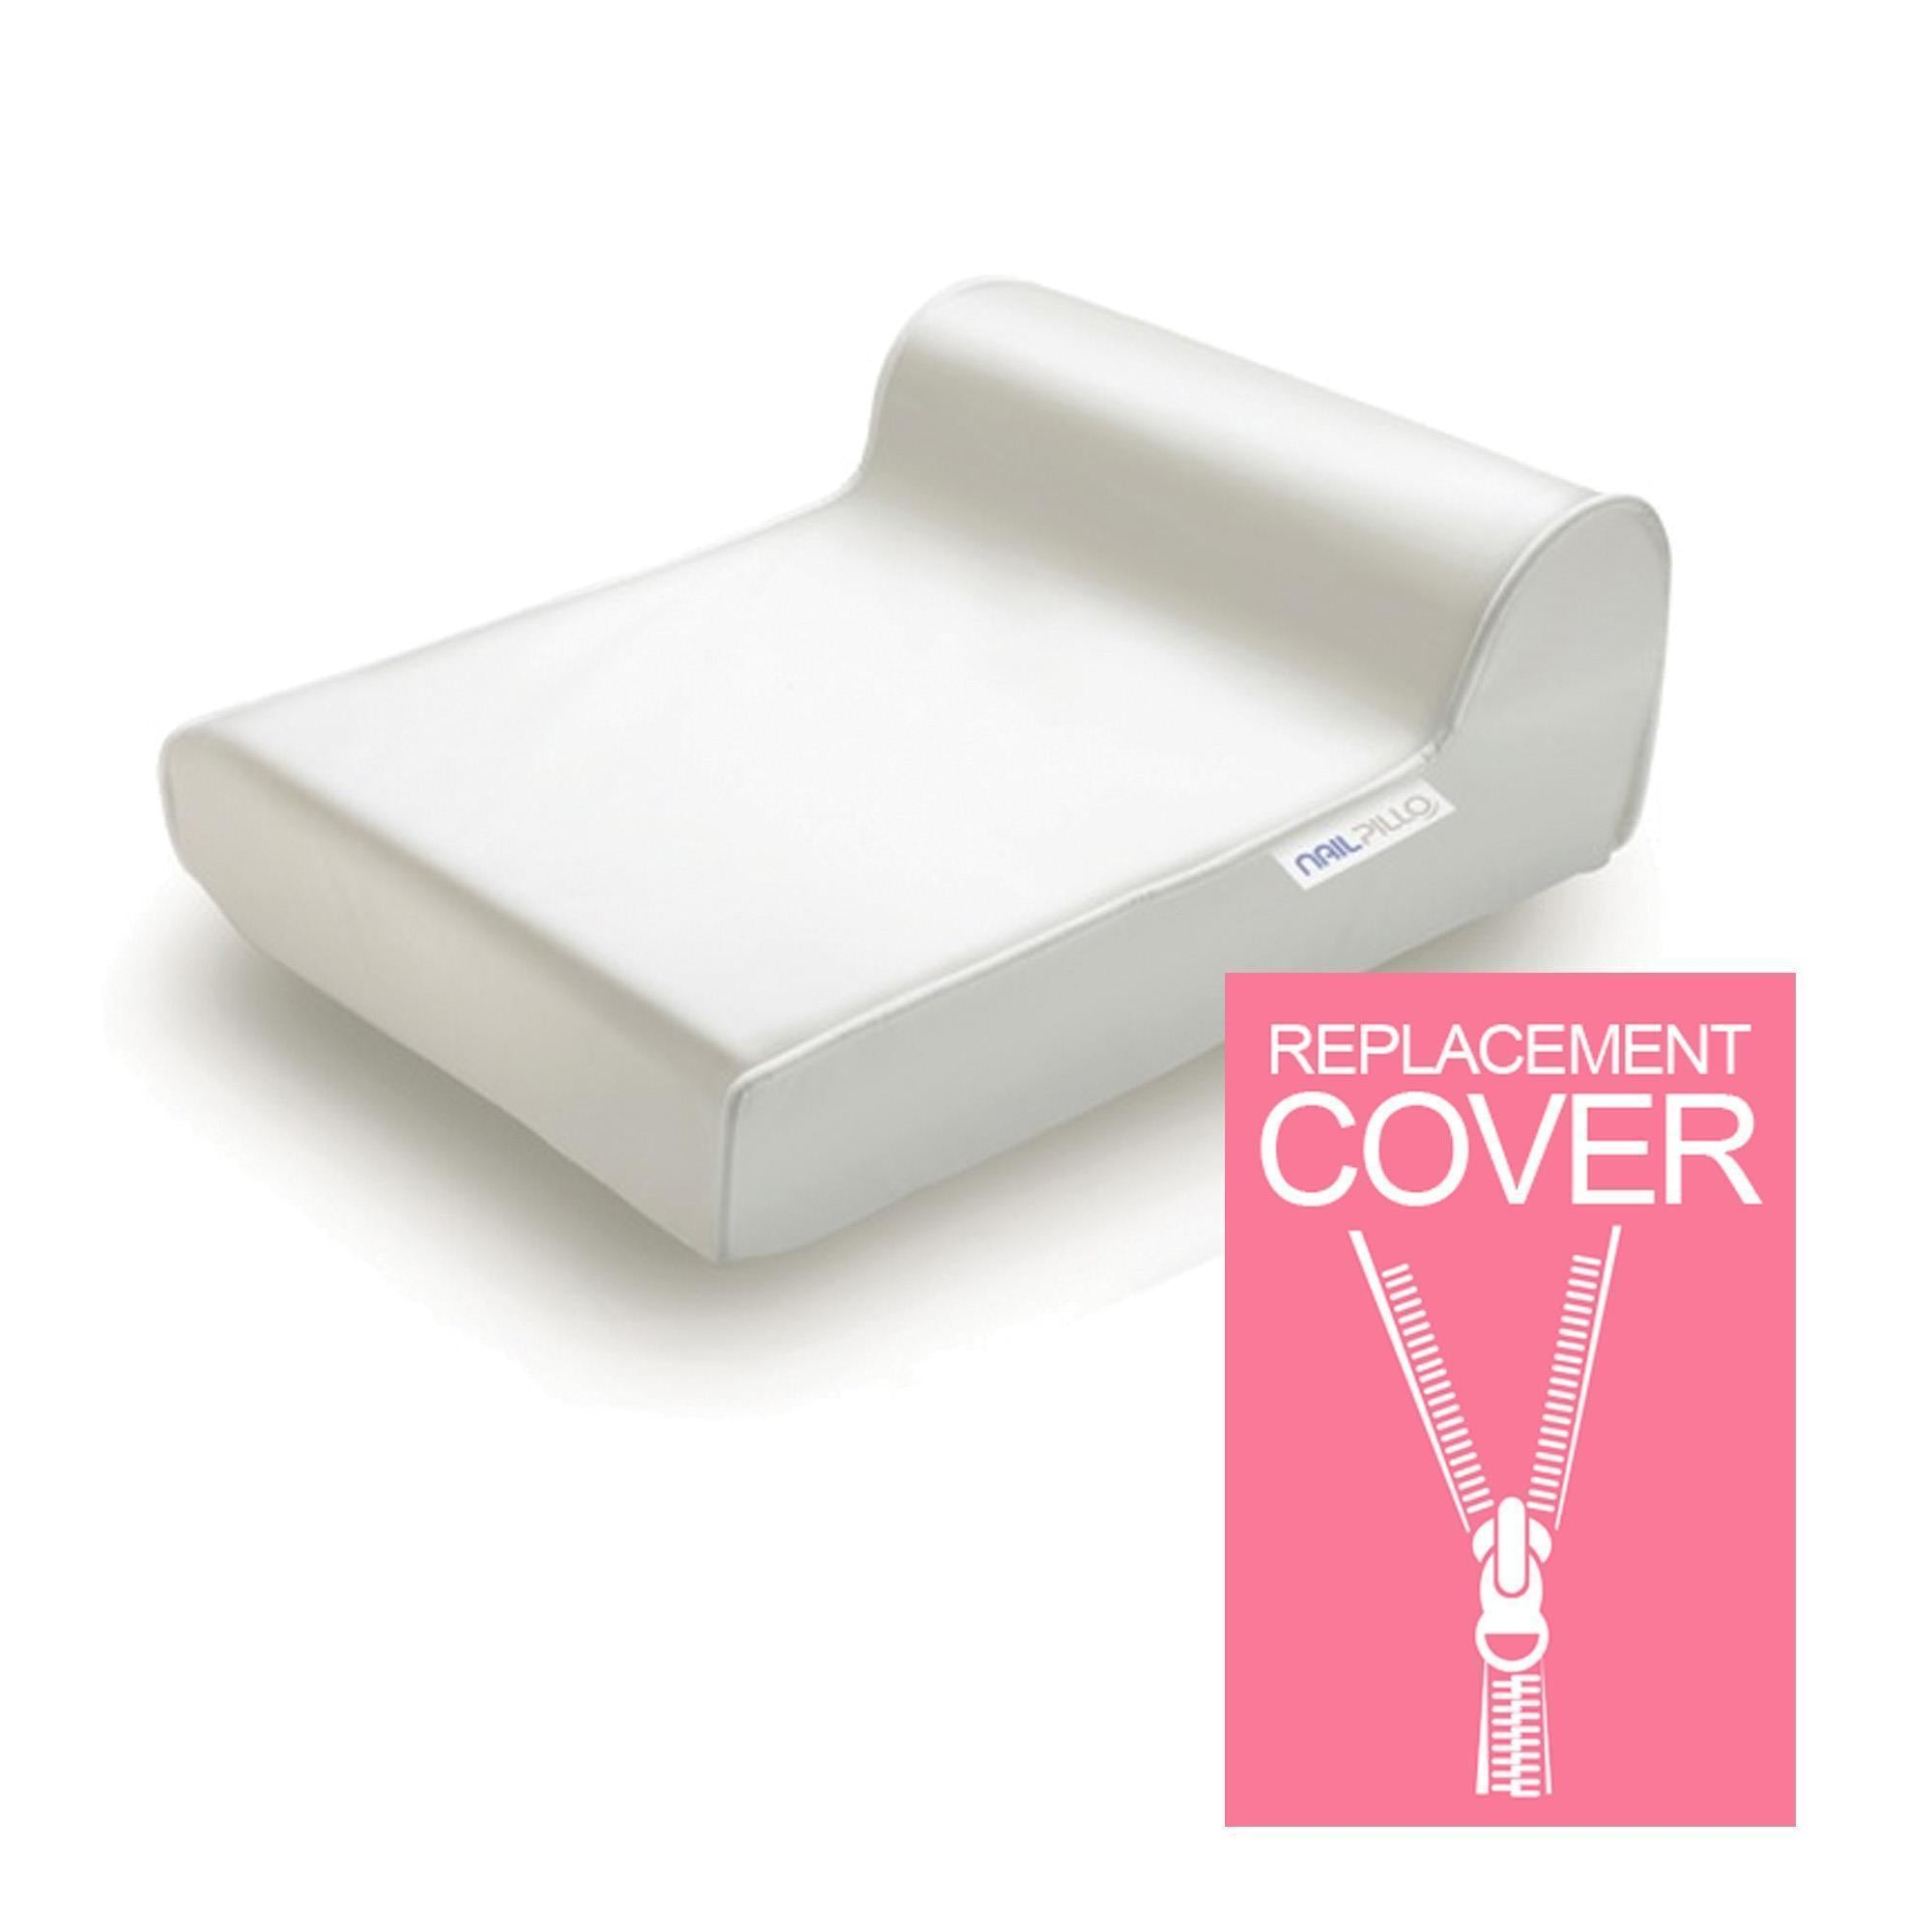 Headrest, Face Cradle & Pillow Ladypillo Replacement Cover / Nailpillo / White